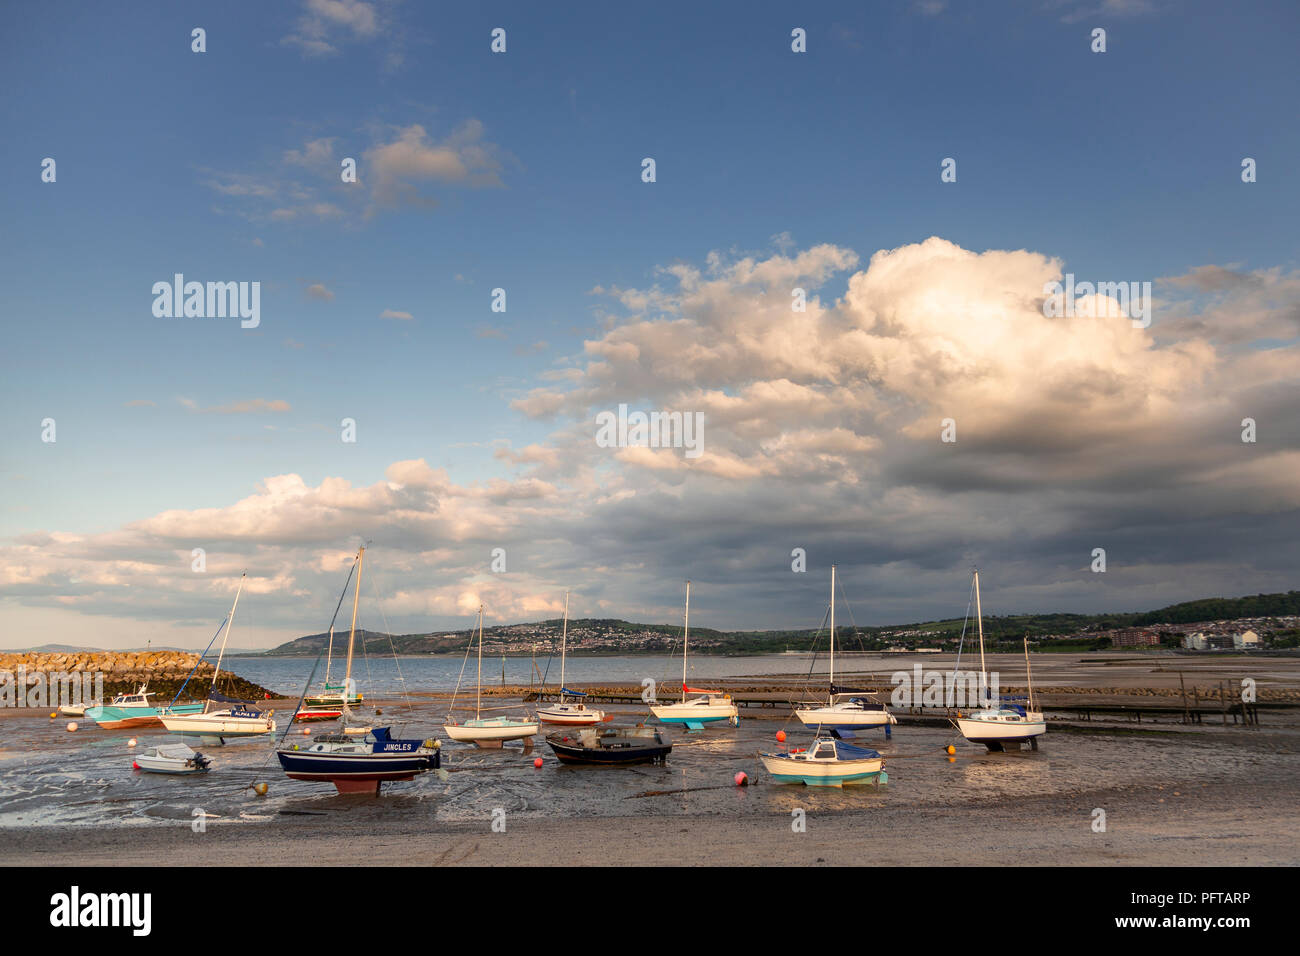 Small boats at low tide in Rhos-on-Sea harbour on the North Wales coast - Stock Image